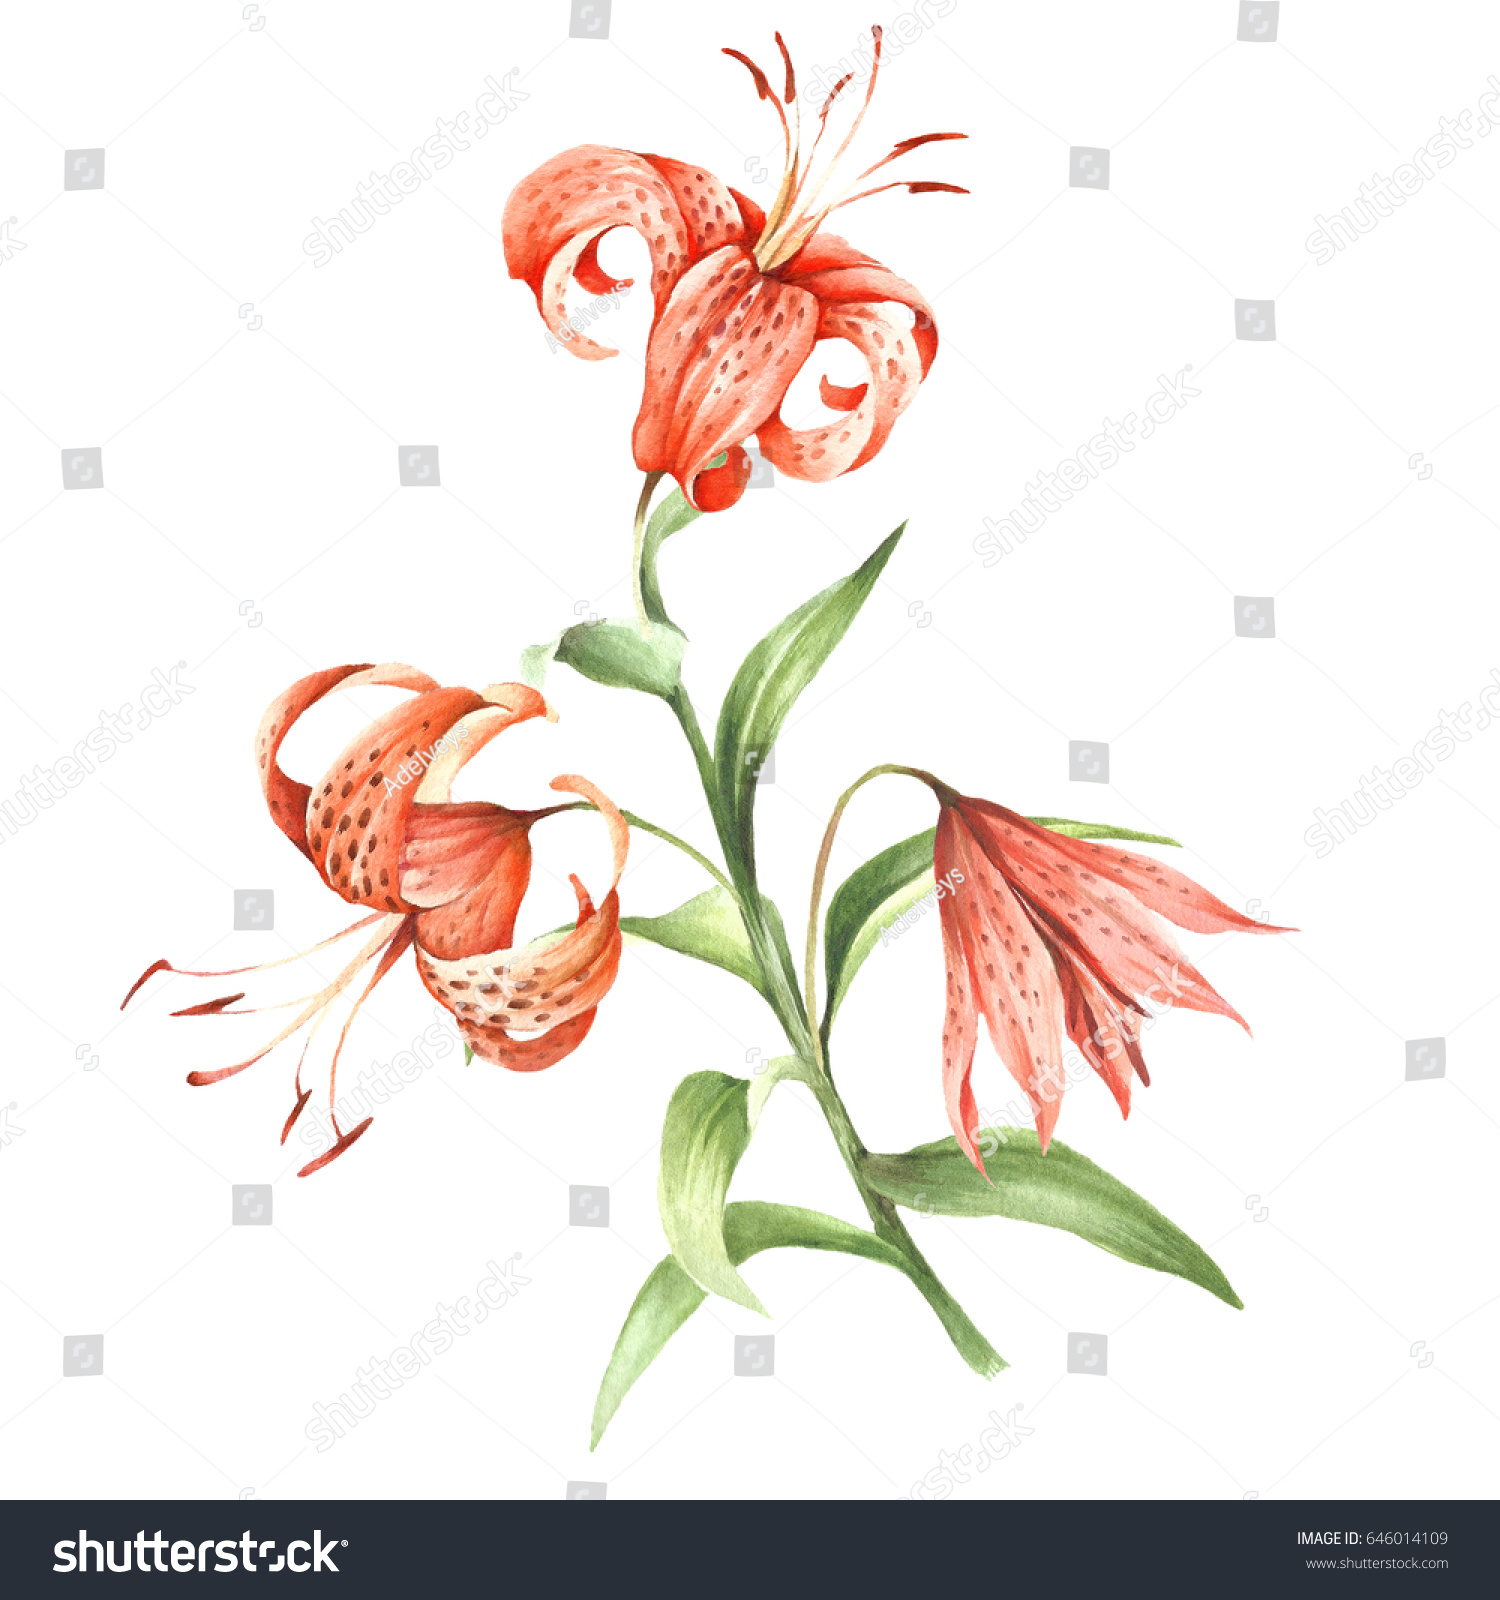 Image tiger lily flowers hand draw stock illustration 646014109 image tiger lily flowers hand draw watercolor illustration izmirmasajfo Gallery